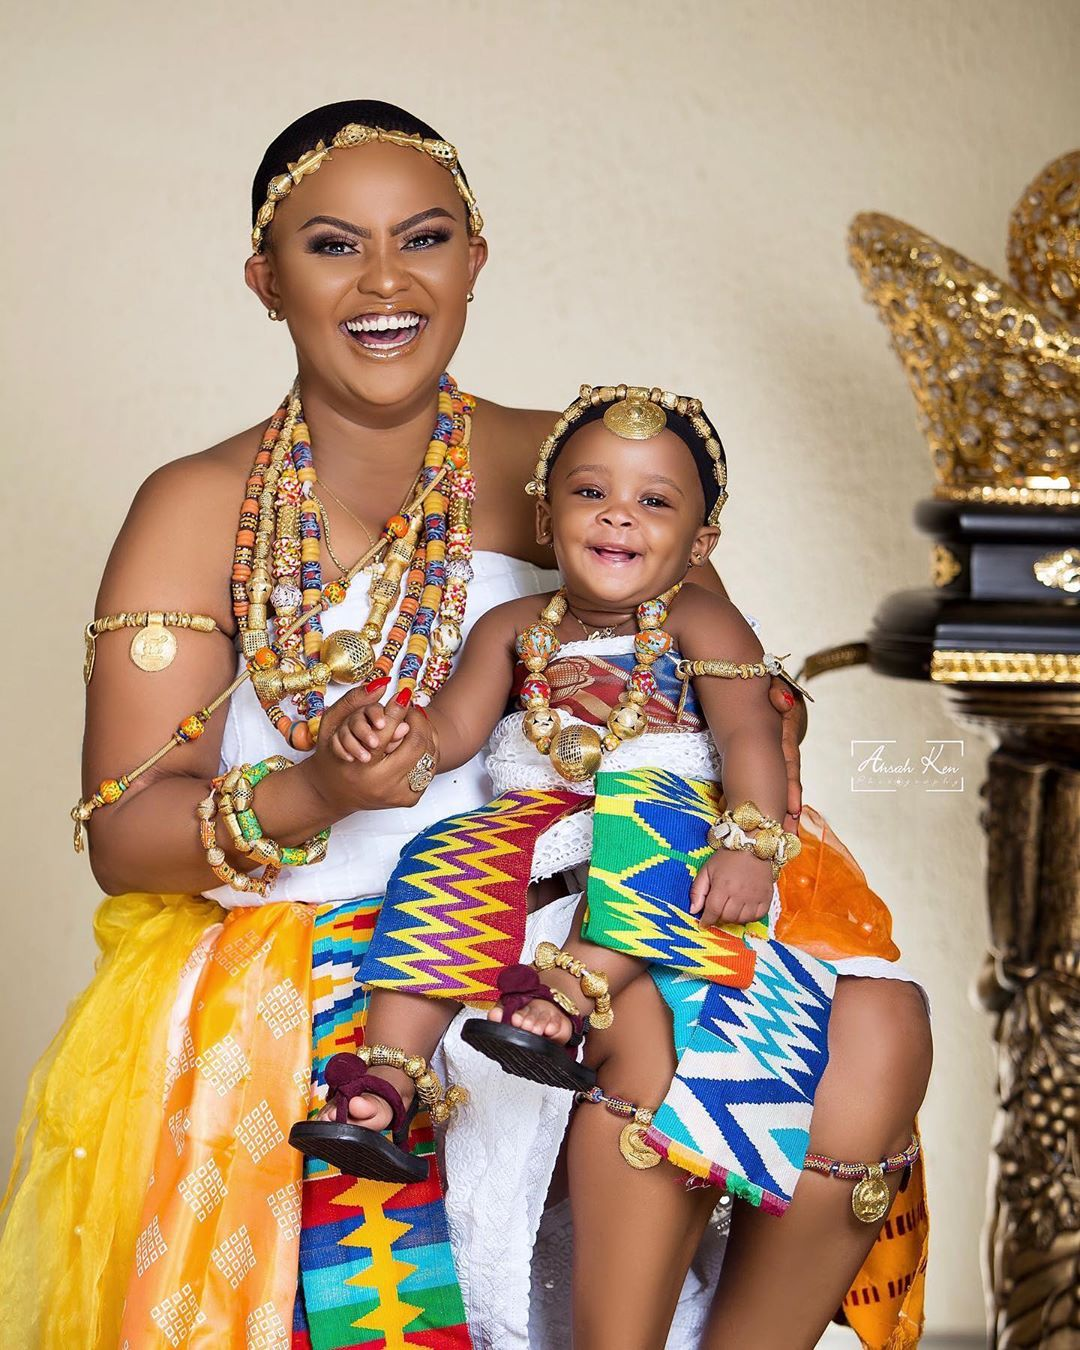 Photos: Nana Ama McBrown celebrates her baby's first birthday